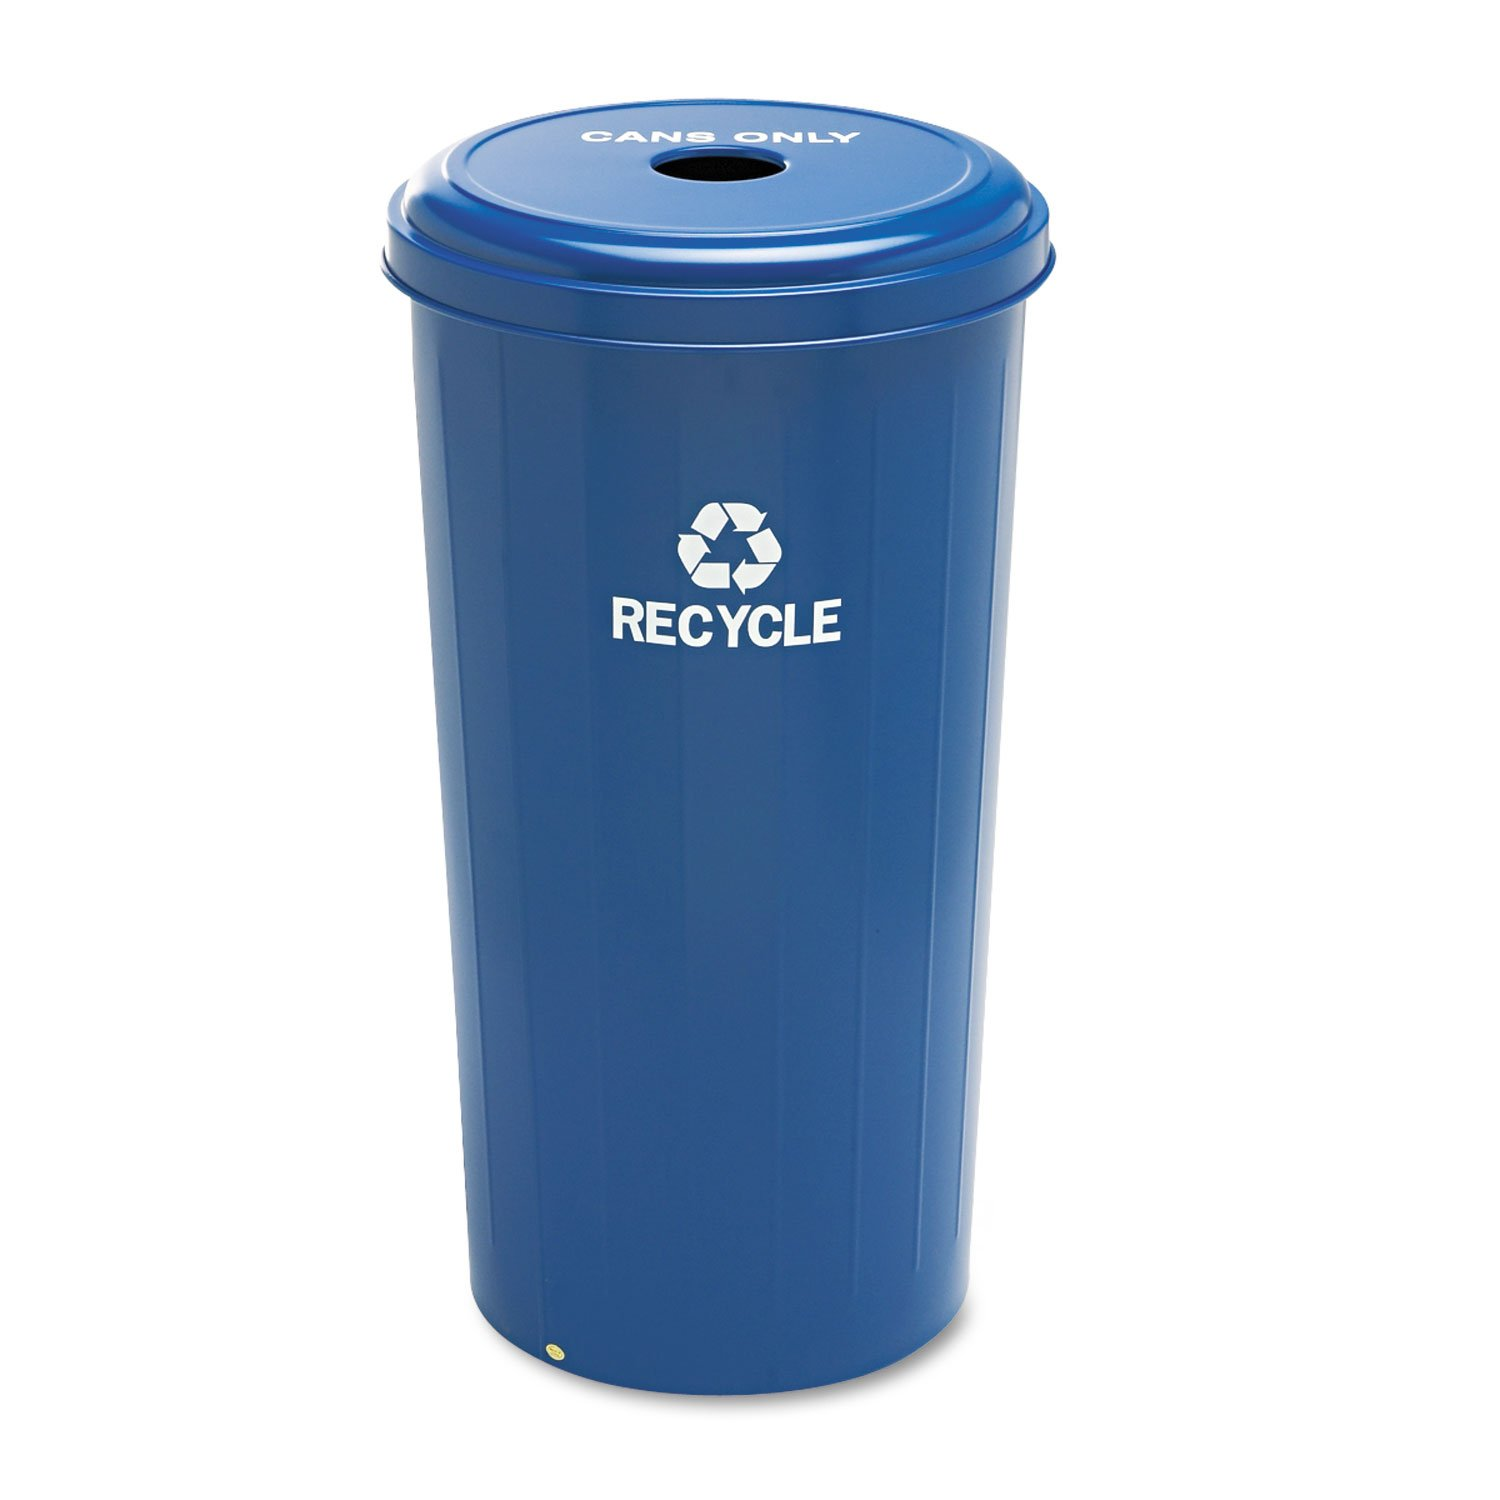 Safco 9632BU Tall Recycling Receptacle for Cans Round Steel 20gal Recycling Blue by Safco (Image #1)